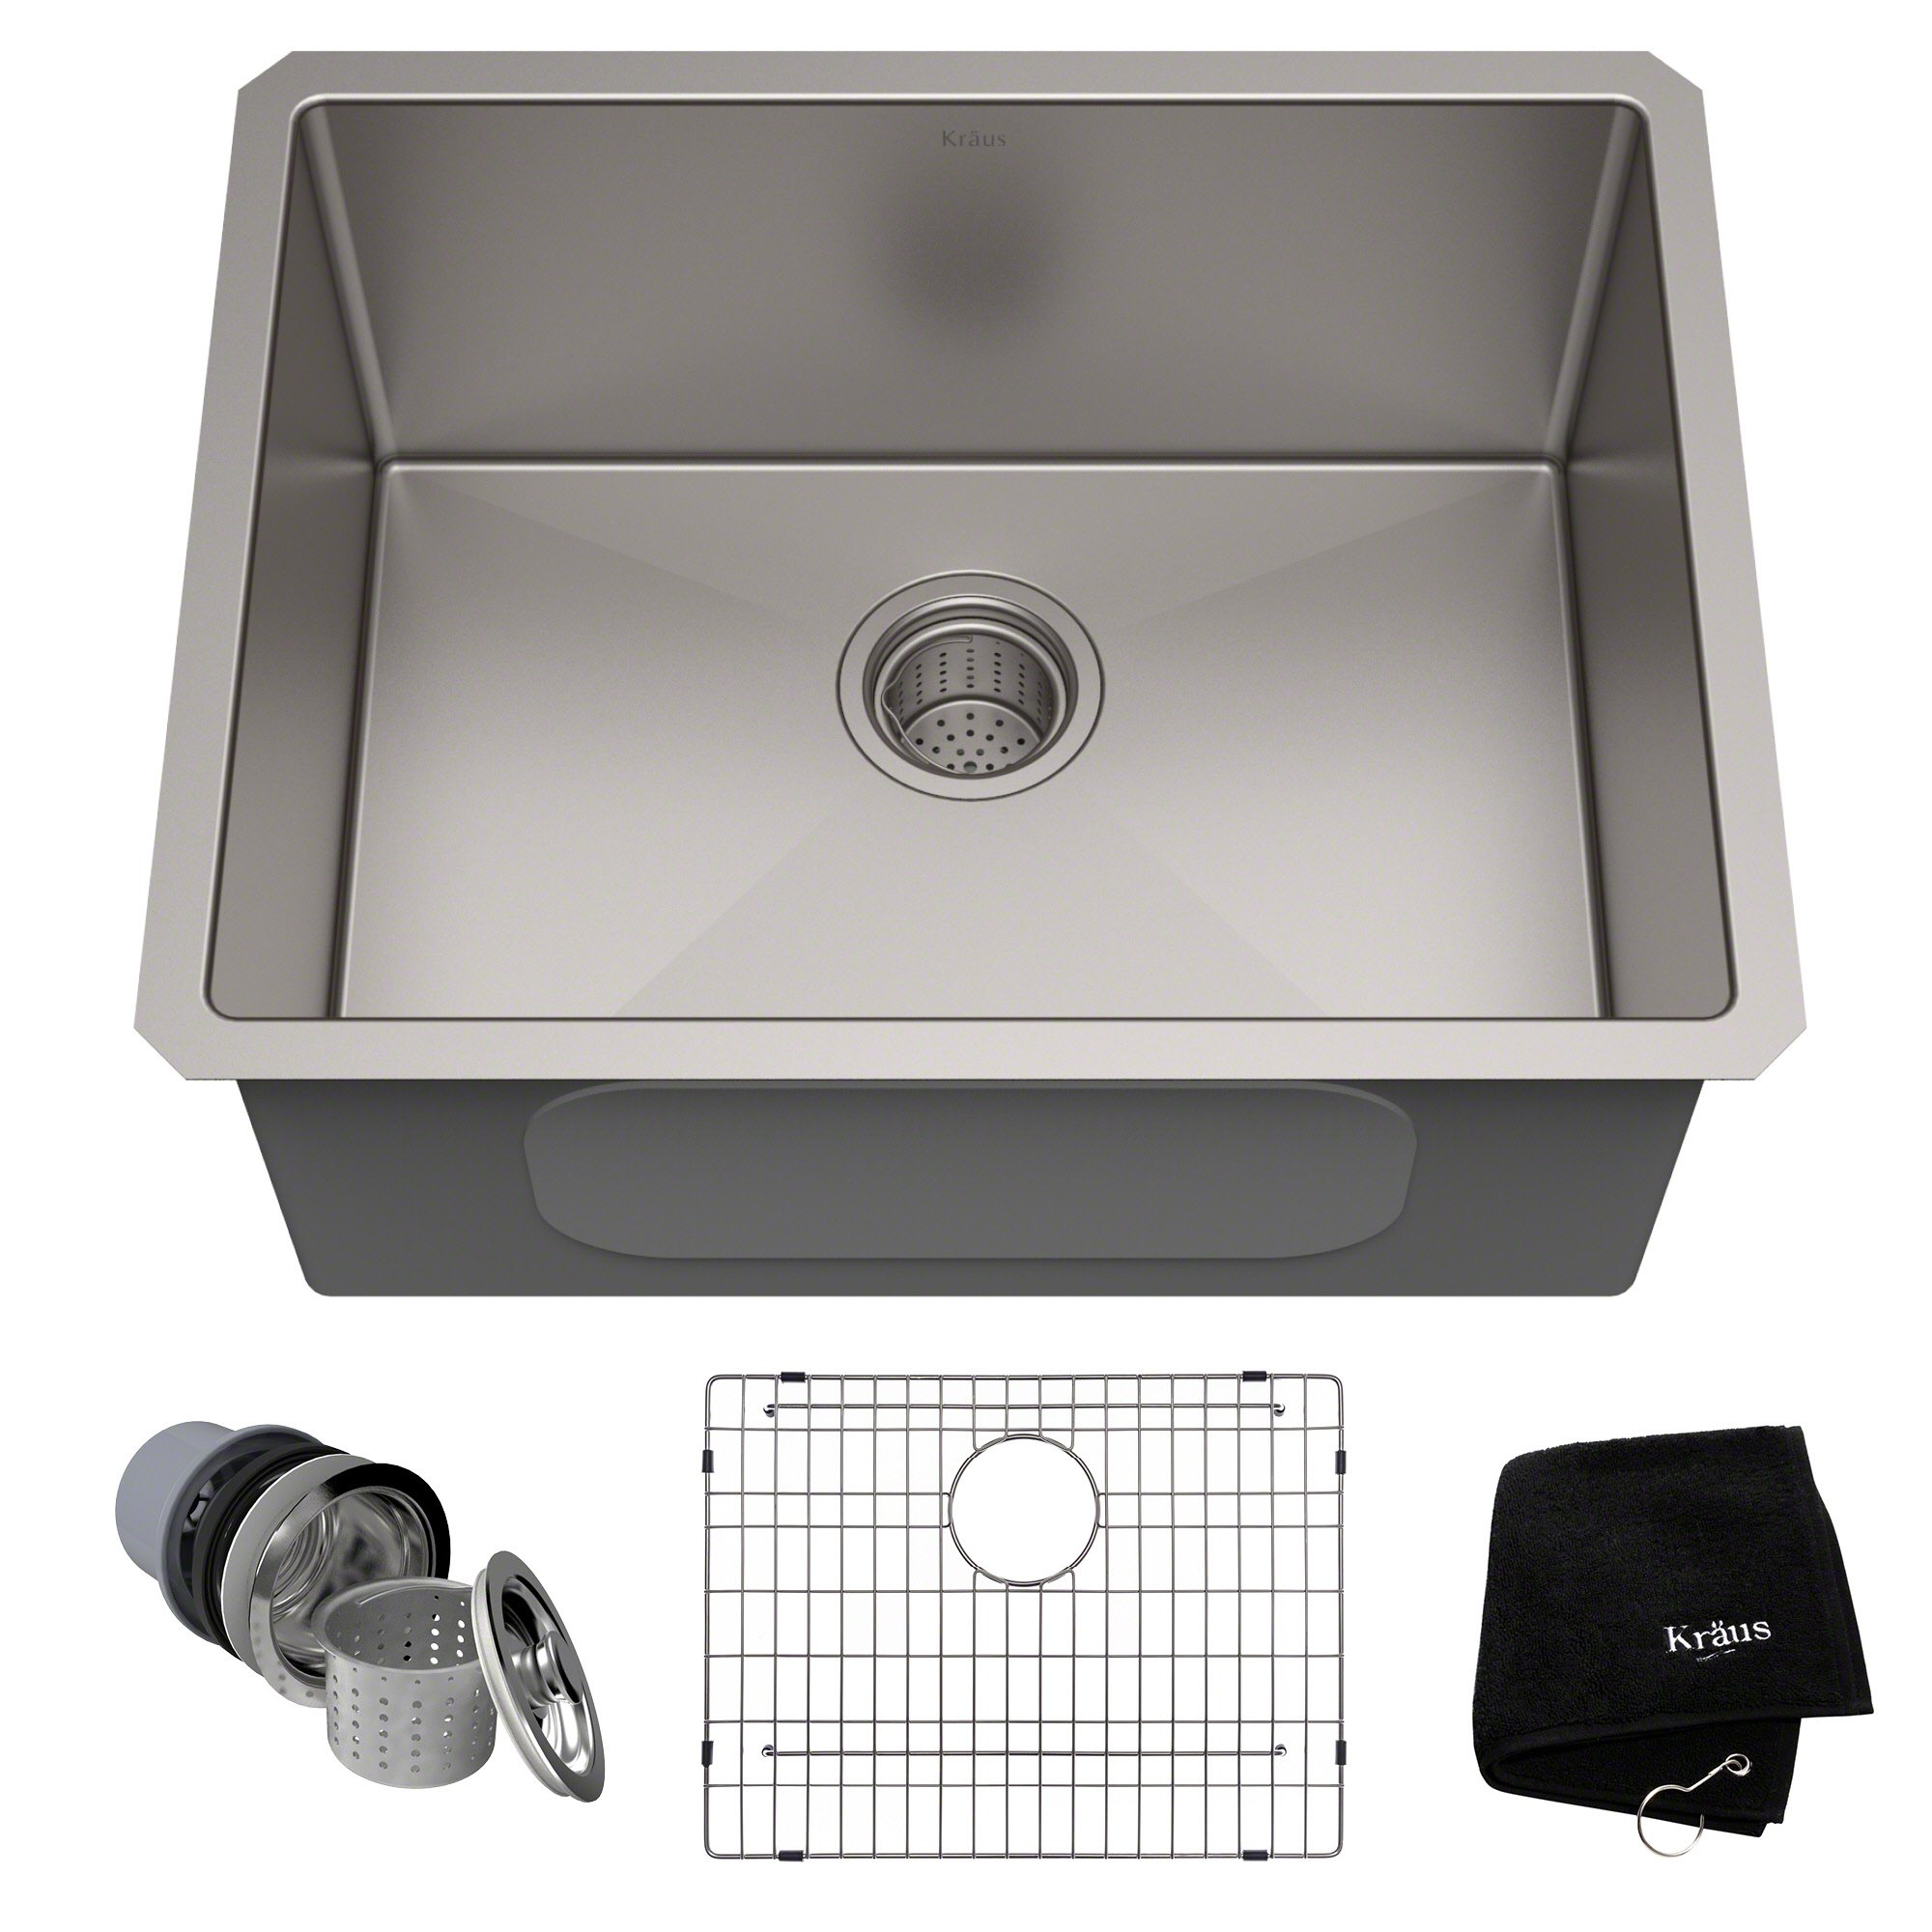 KRAUS Standart PRO 23-inch 16 Gauge Undermount Single Bowl Stainless Steel Kitchen Sink, KHU101-23 by Kraus (Image #1)